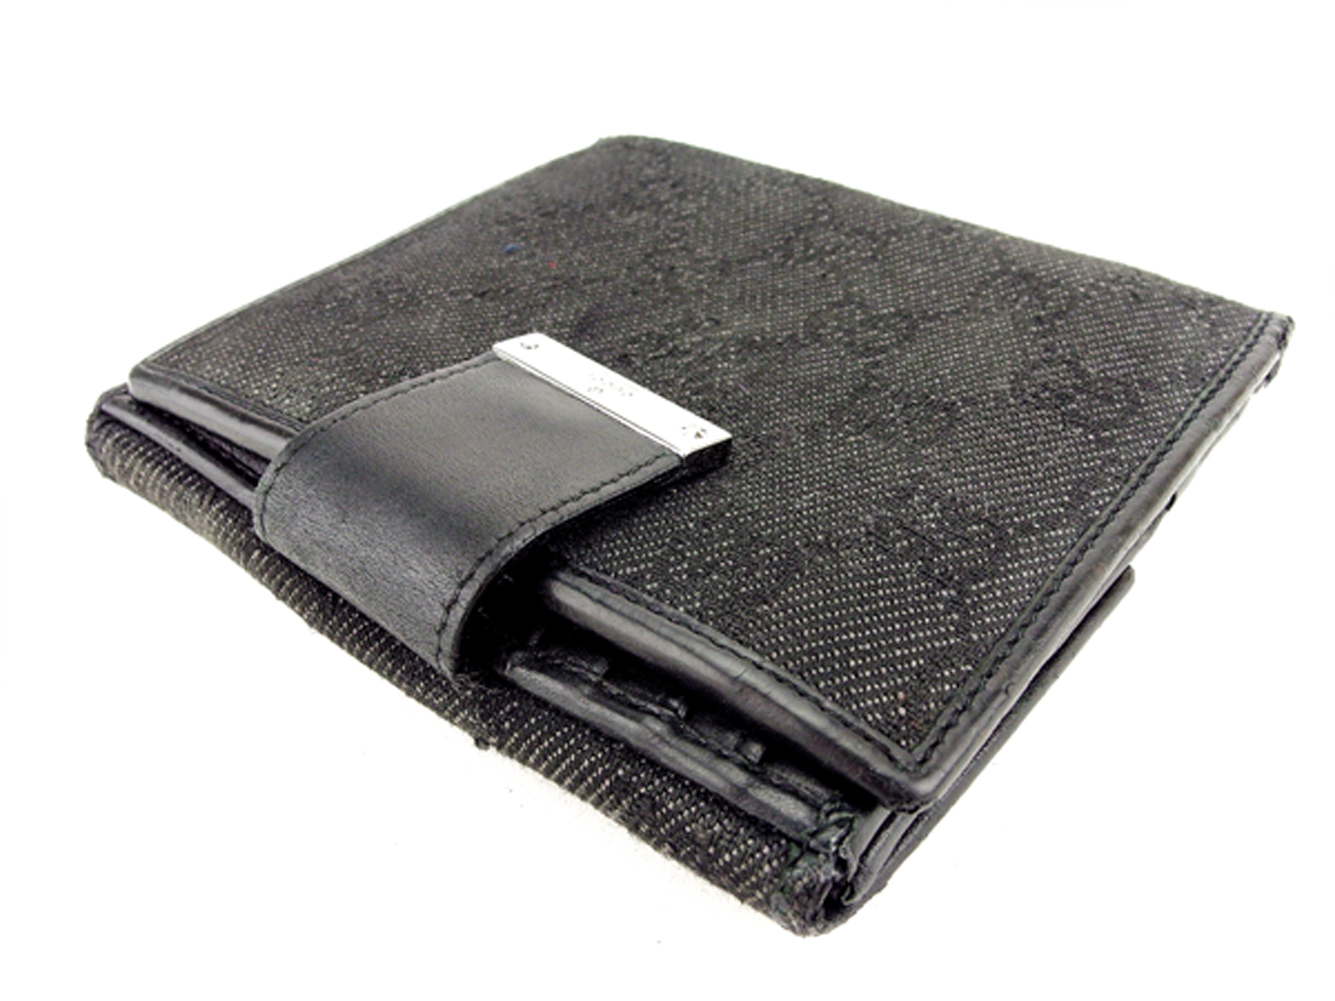 e6f75cc91551 Gucci Wallet Mens Japan | Stanford Center for Opportunity Policy in ...